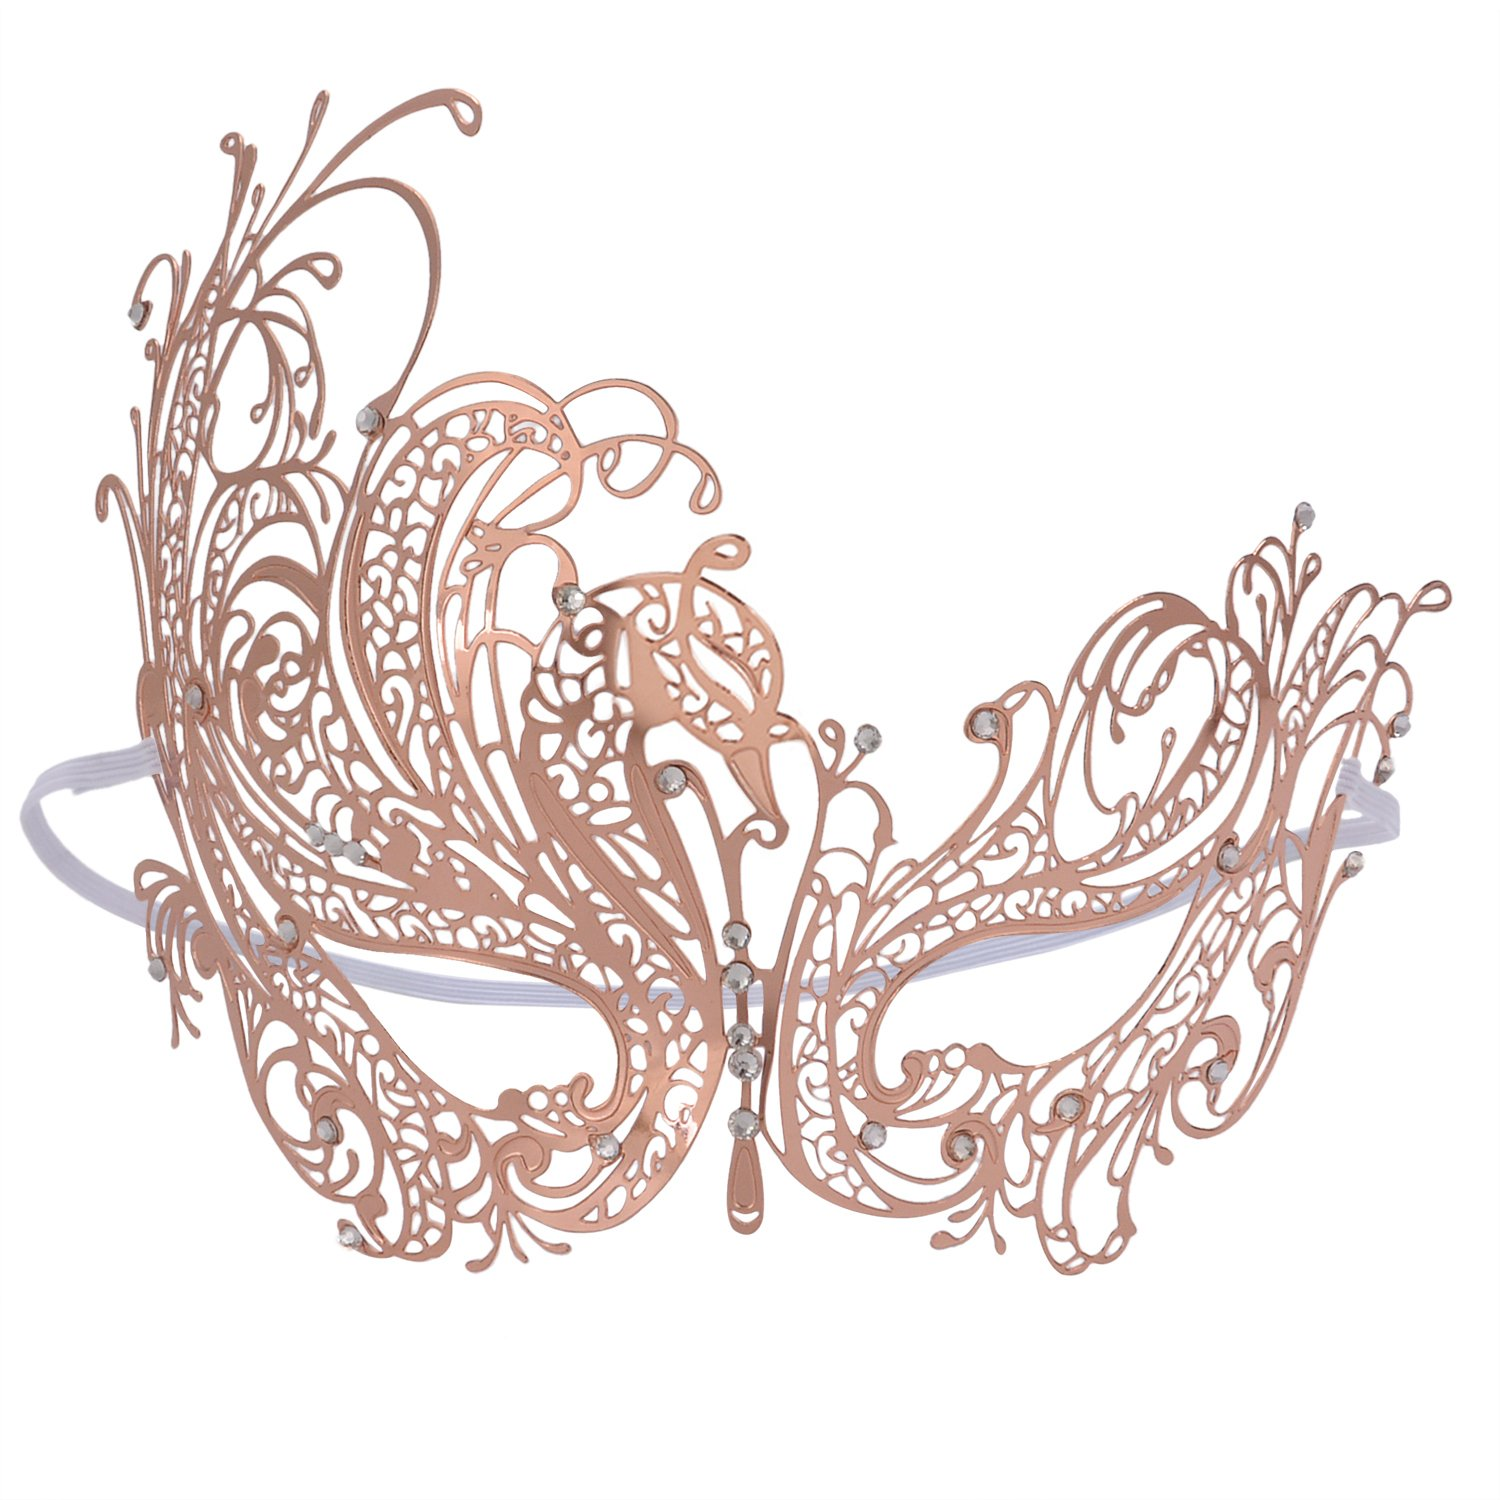 Coxeer Pretty Elegant Lady Masquerade Halloween Party Mask BF001BK